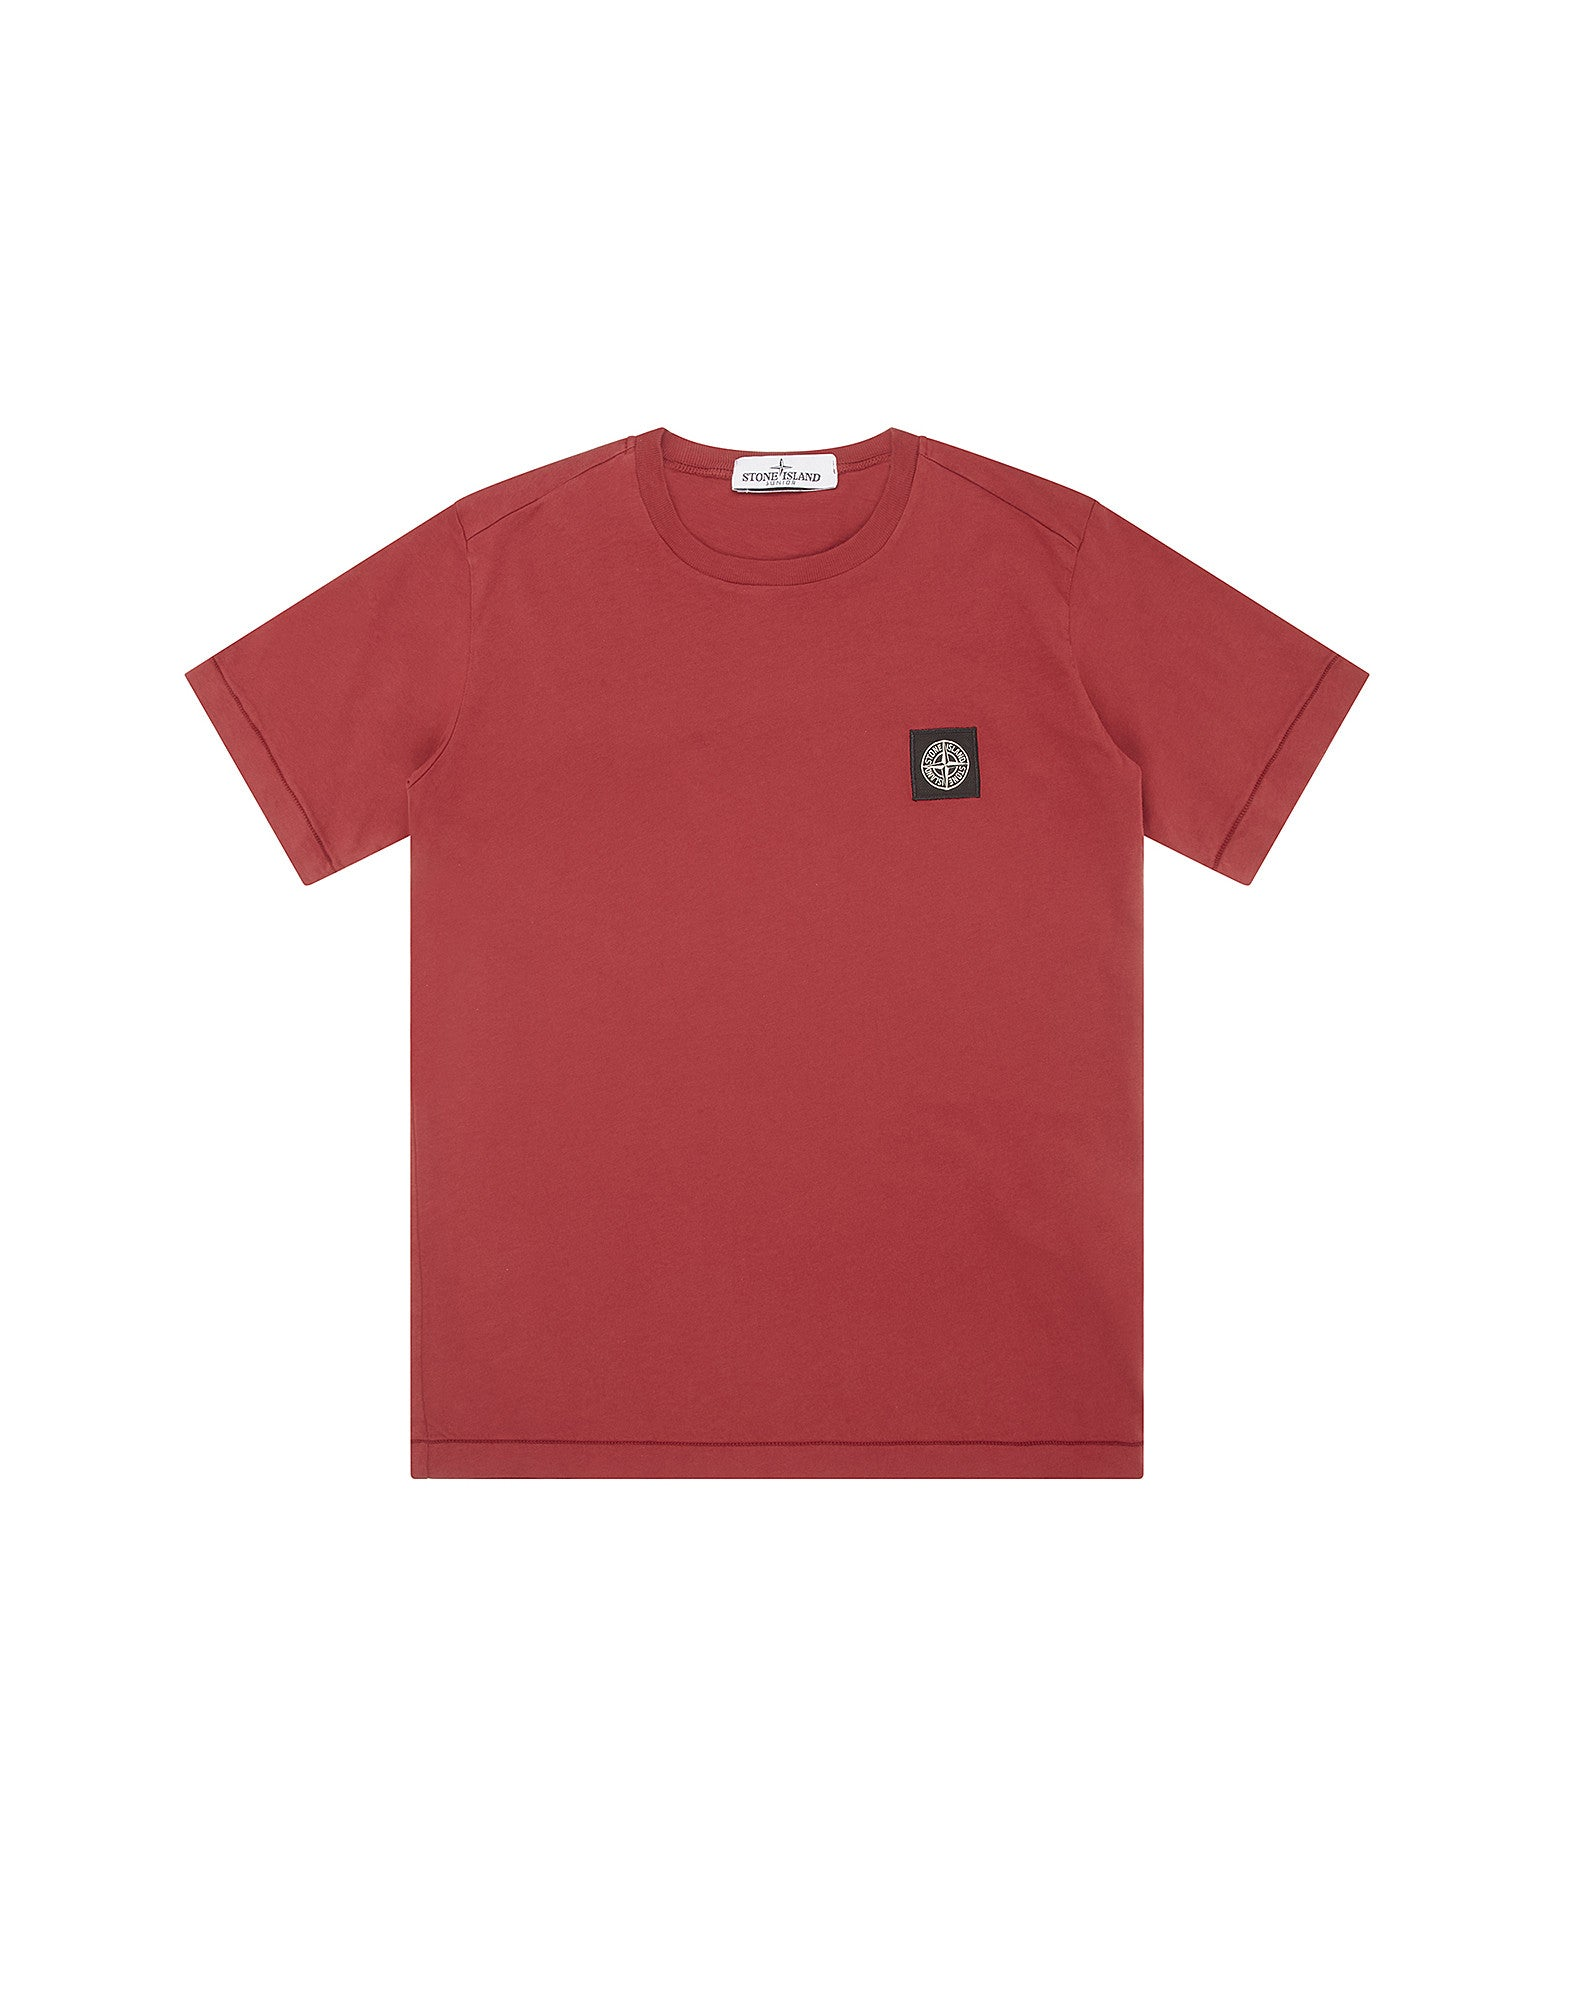 20147 T-Shirt in Red